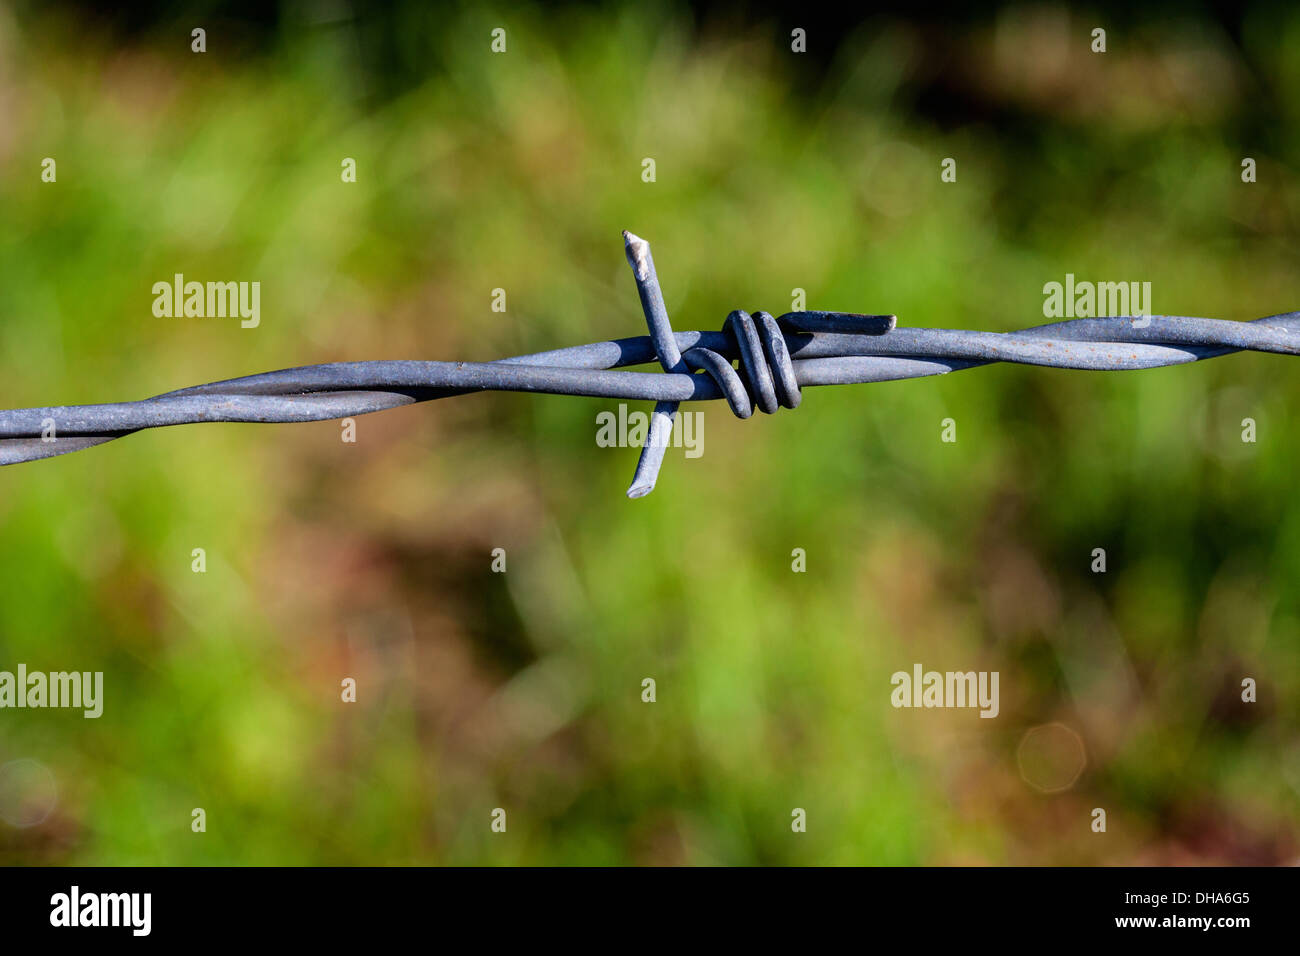 Close up of a barbed wire fence - Stock Image